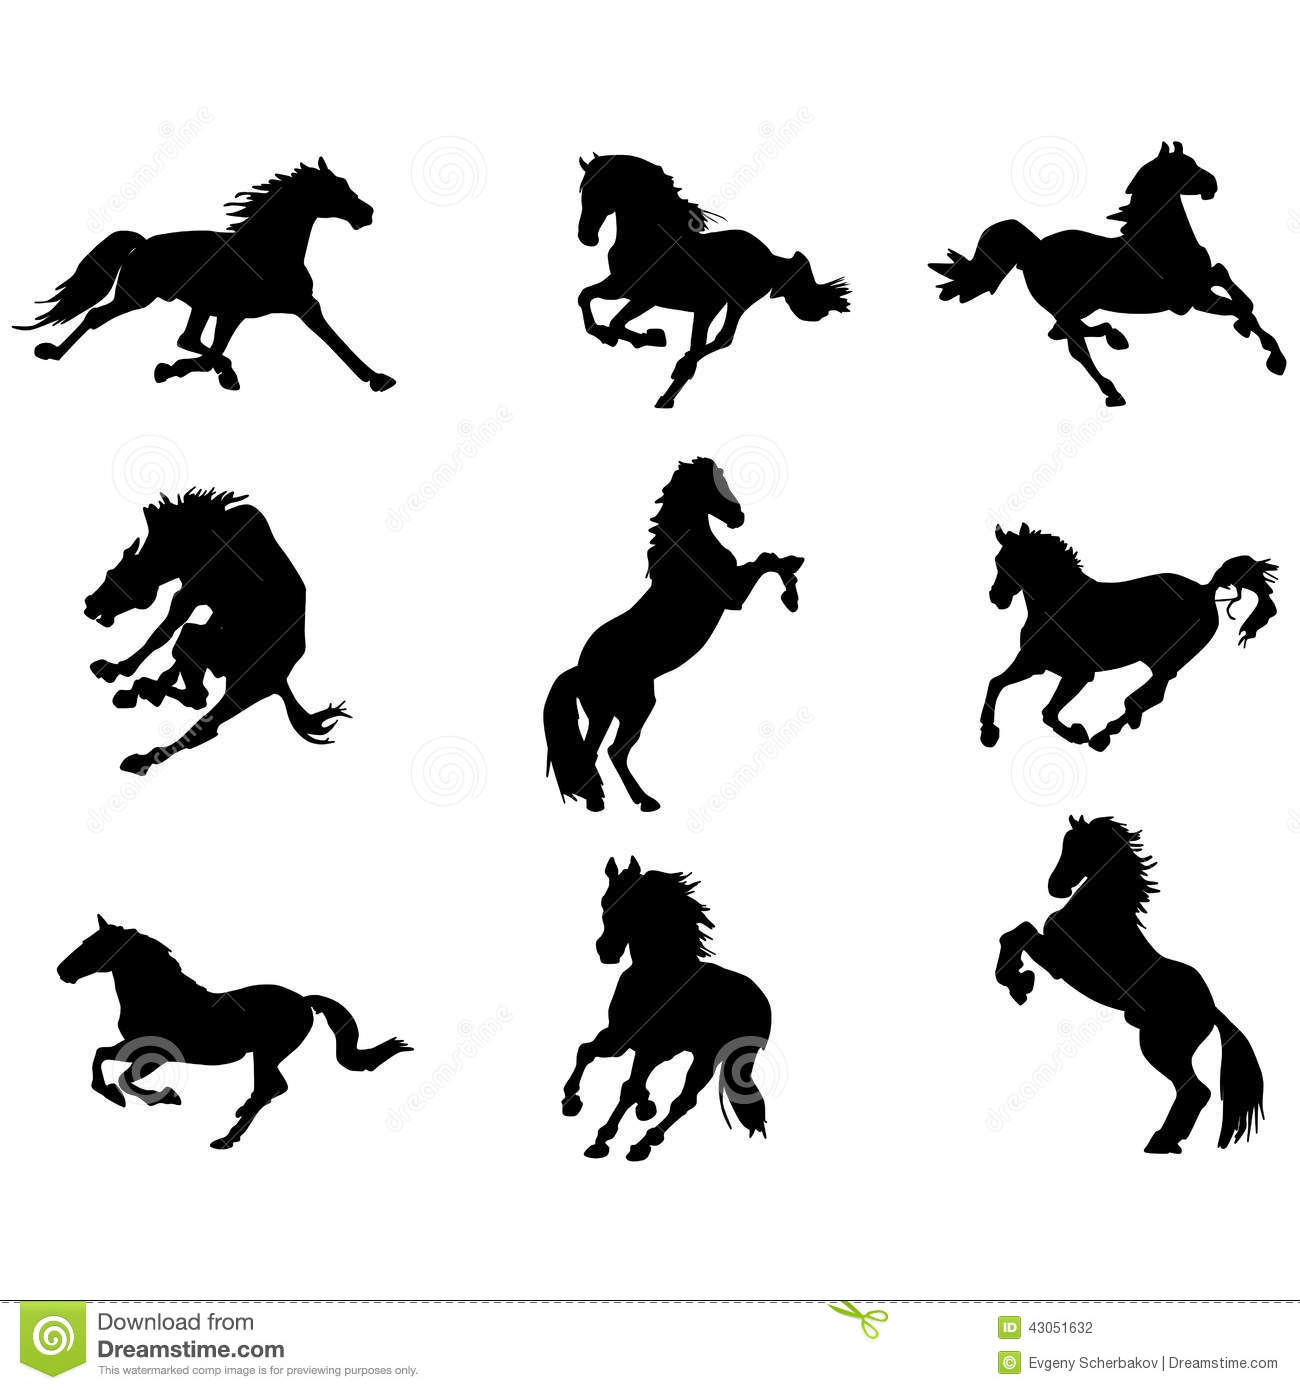 Cavallo clipart #2, Download drawings